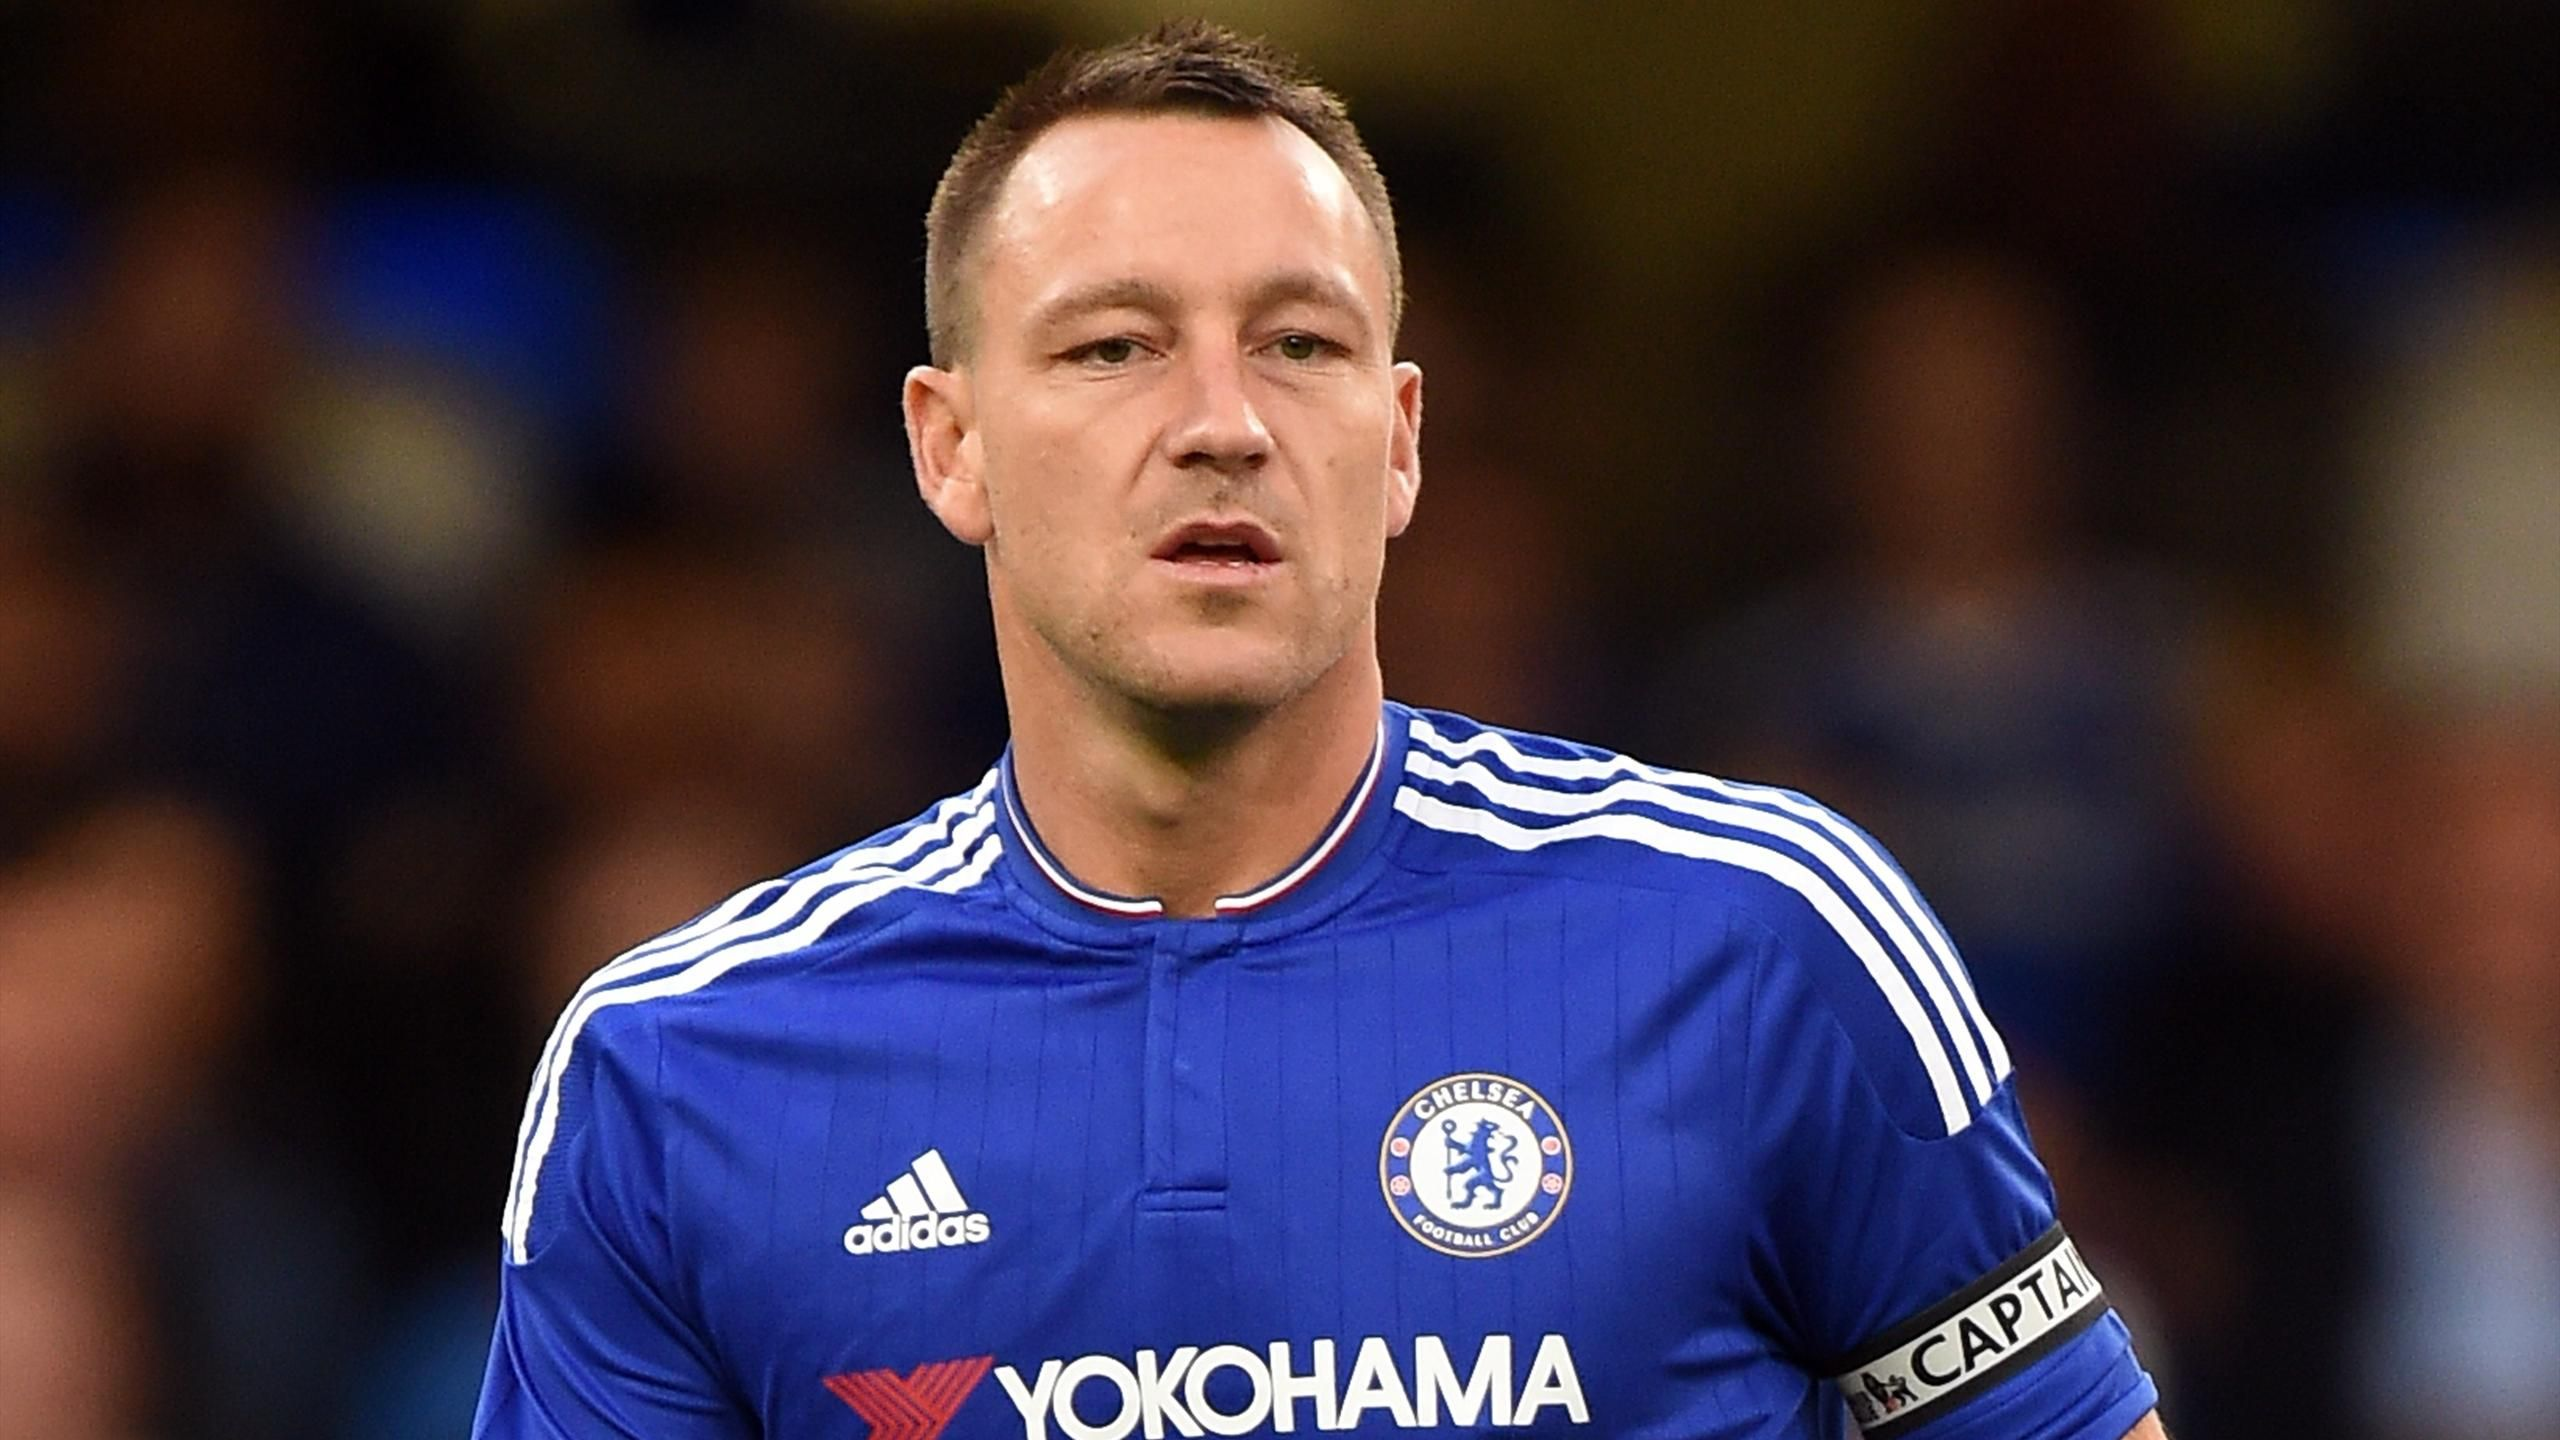 1693608 35870640 2560 1440 - Terry Delighted Moses Helped Chelsea Avoid FA Cup Upset